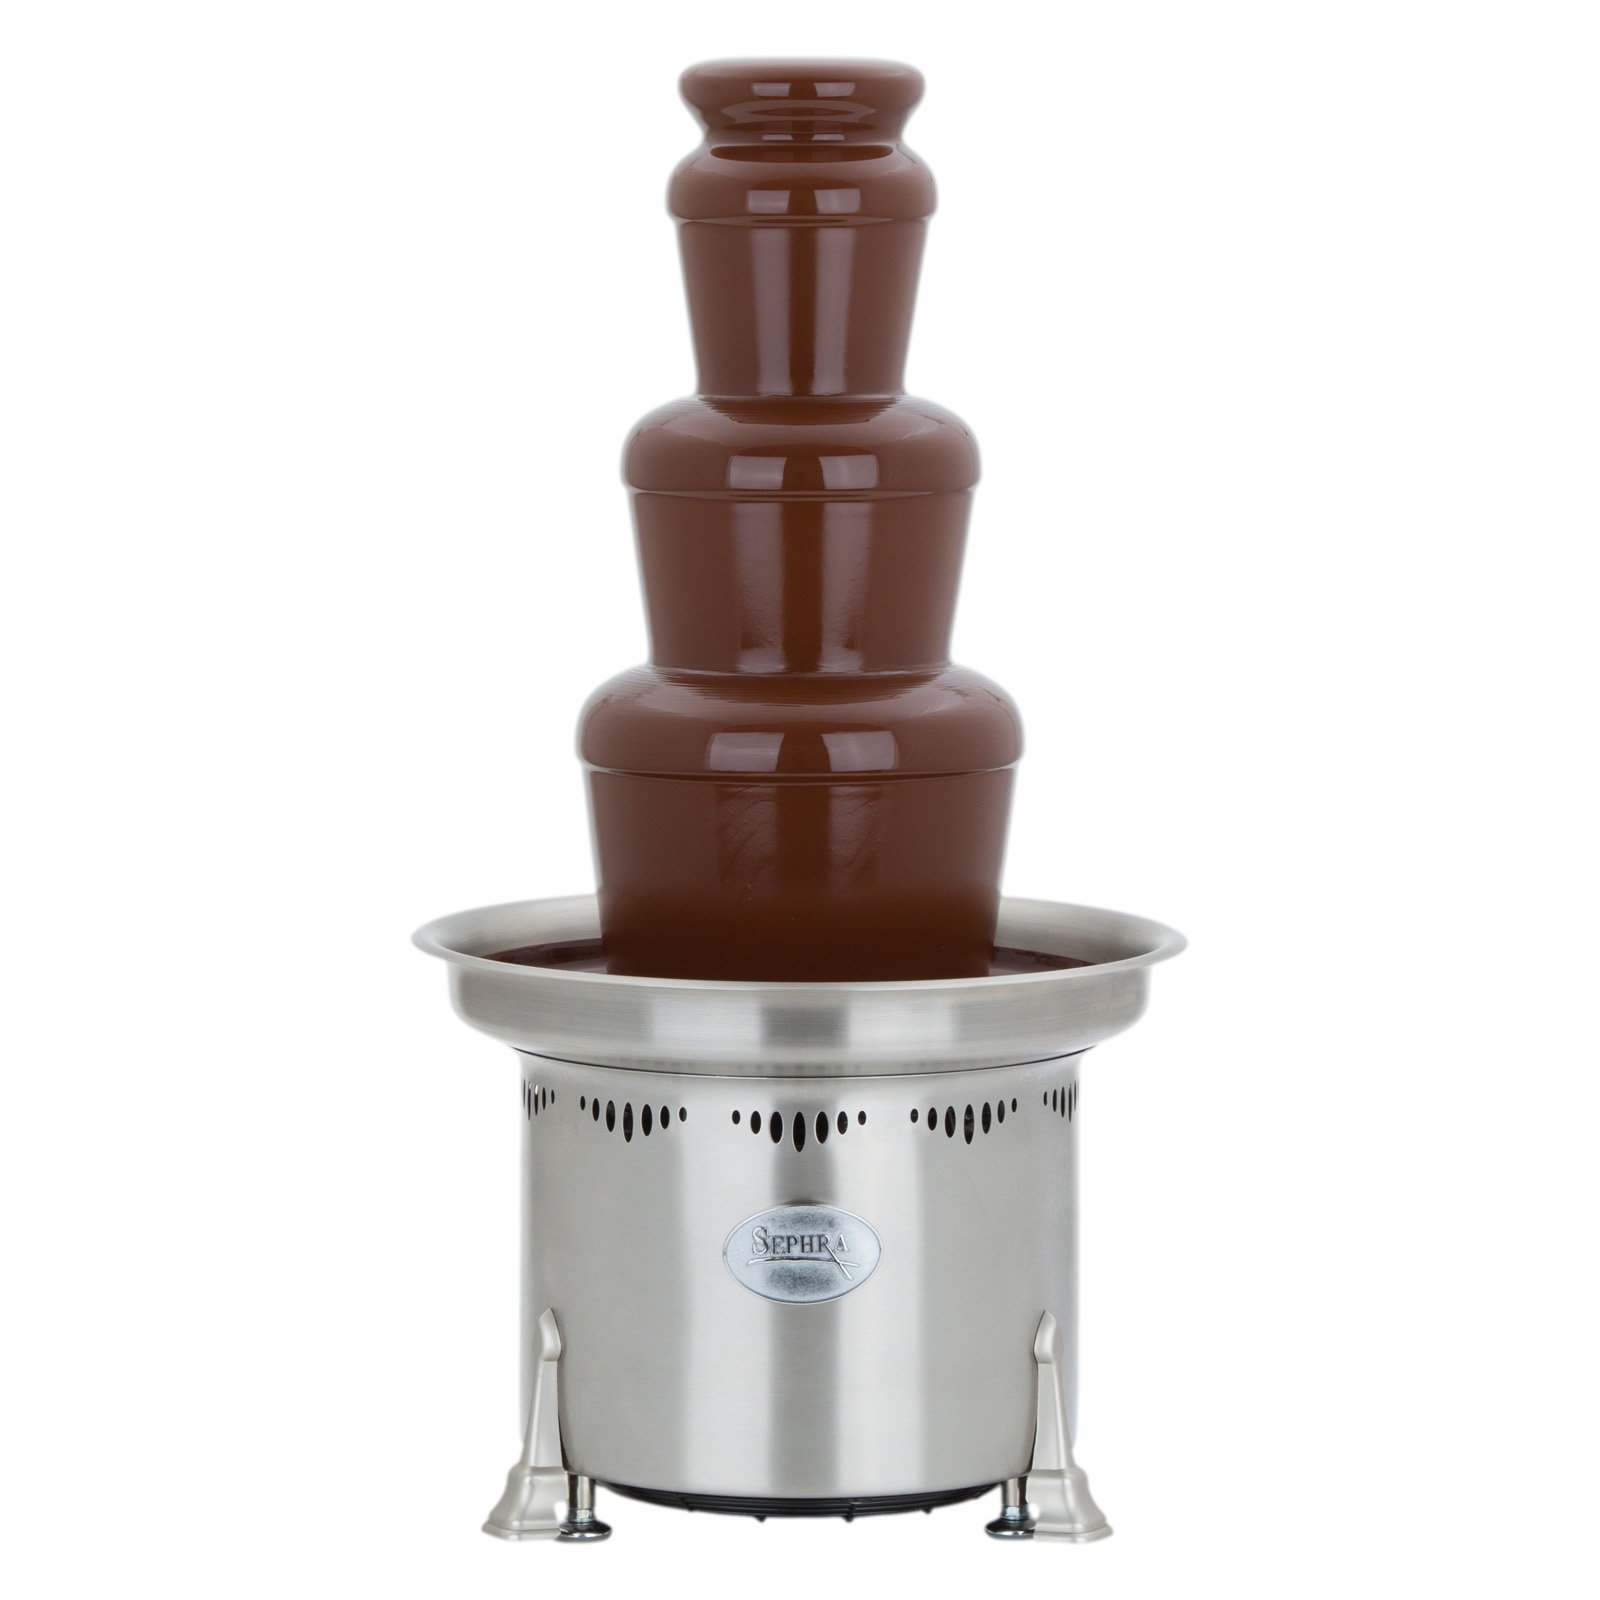 A chocolate fountain is an easy, affordable way to provide a delicious, fun dessert.